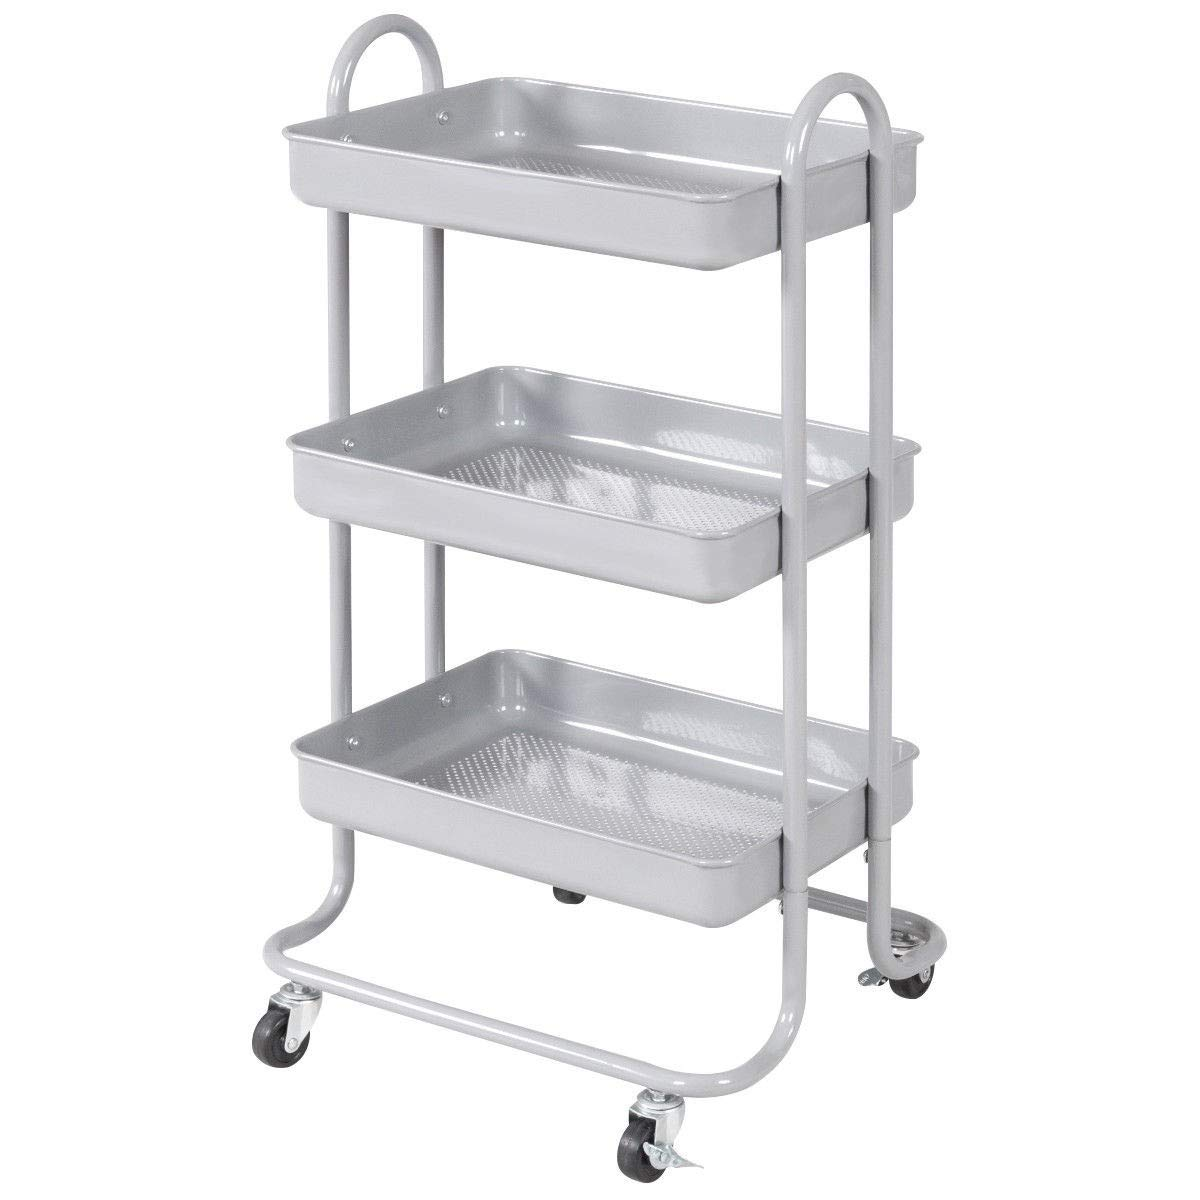 MD Group 3-Tier Steel Rolling Kitchen Trolley Cart